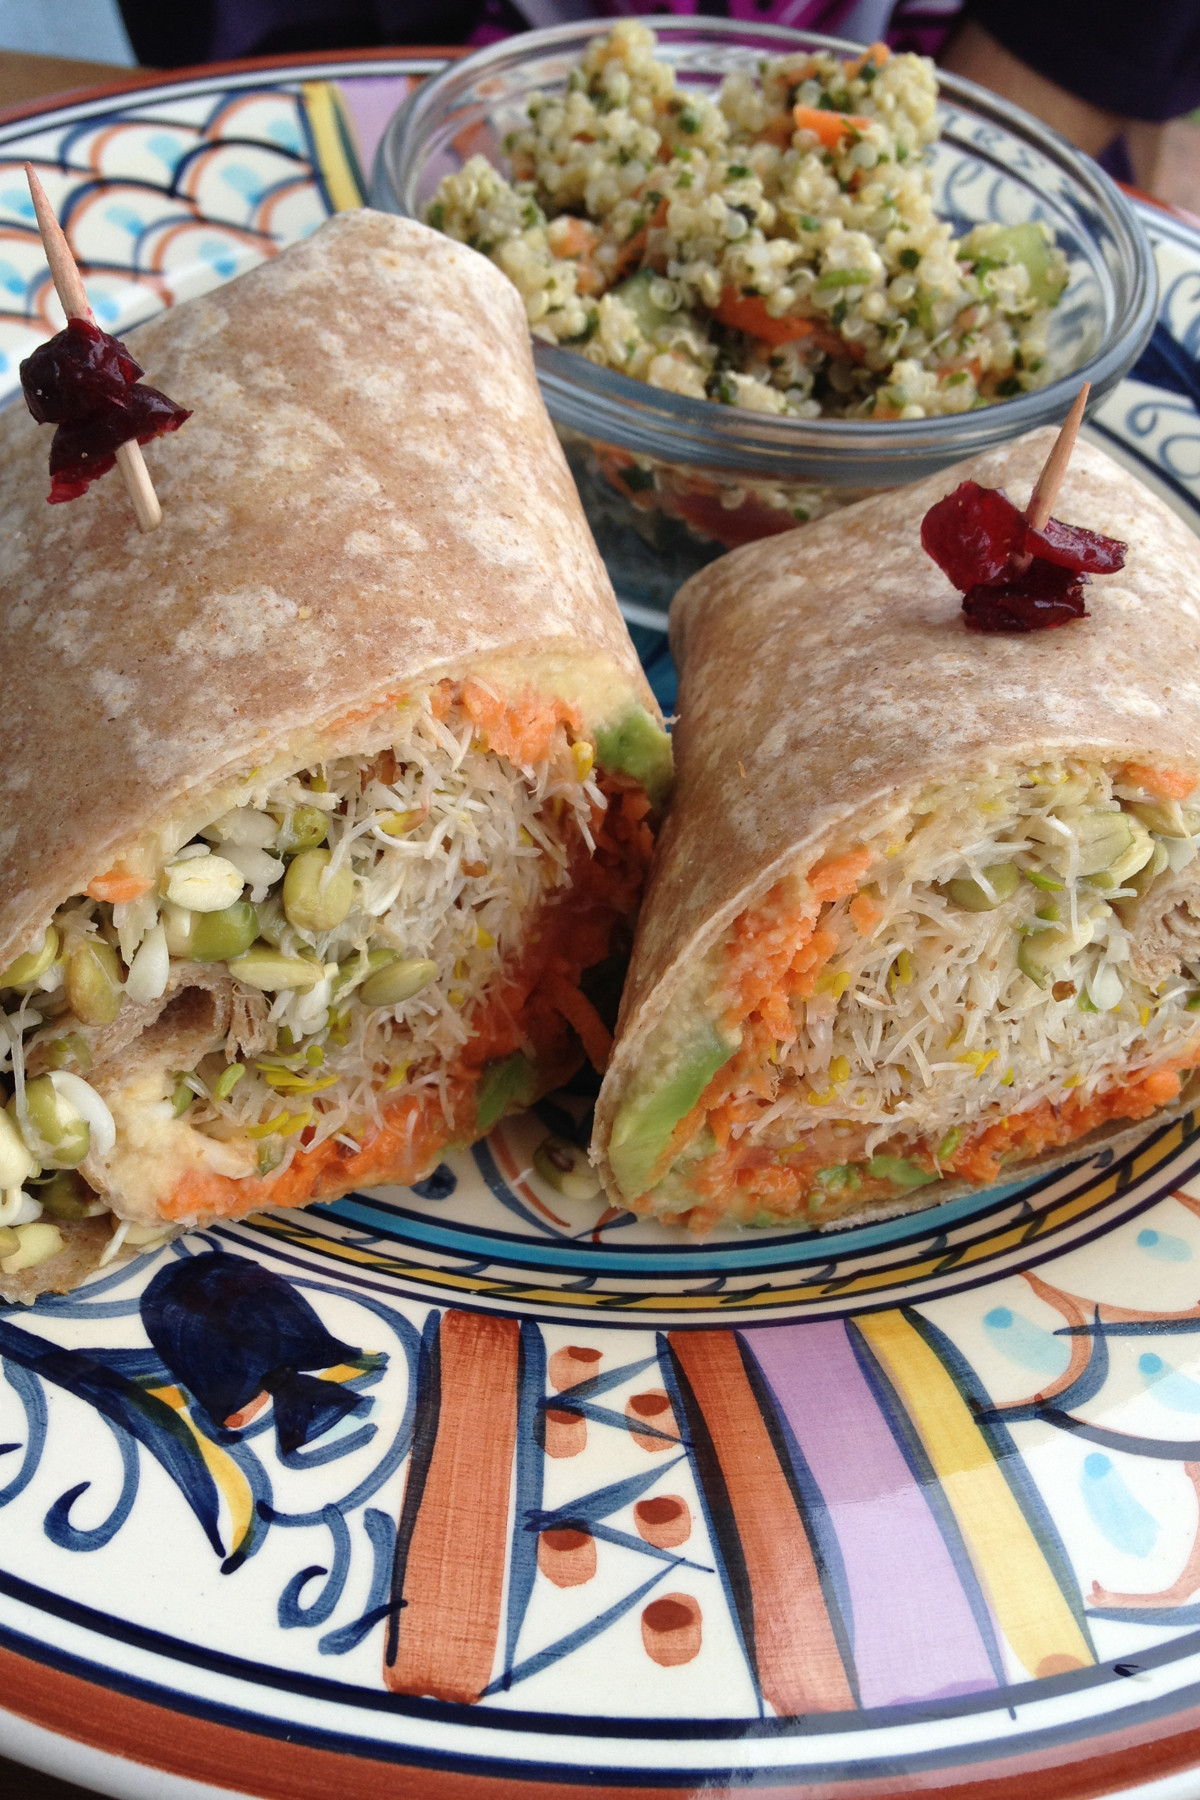 At Delicomb, you'll find menu standouts like this vegan wrap with avocado, hummus, carrots, sprouts and miso sesame dressing in a whole wheat wrap.